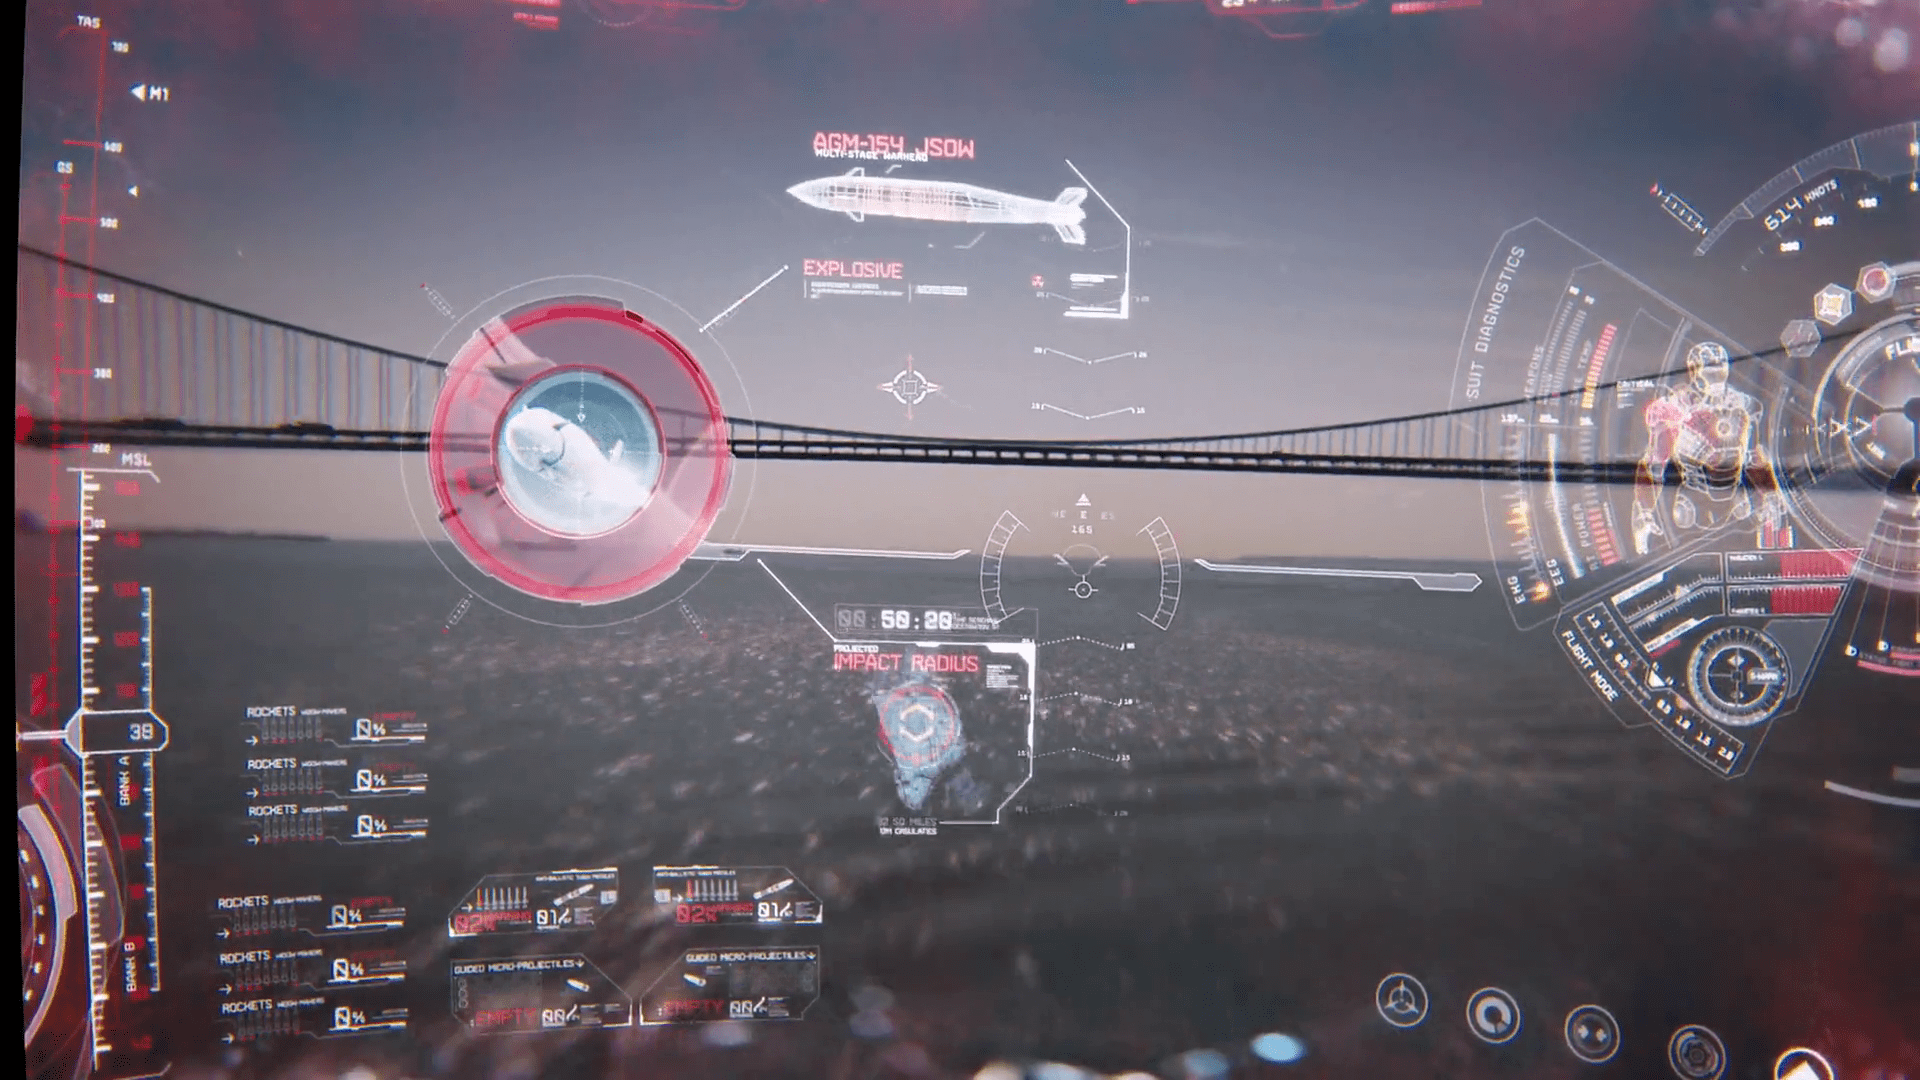 iron man assistant—jarvis analysing the missile in air and other environment factors